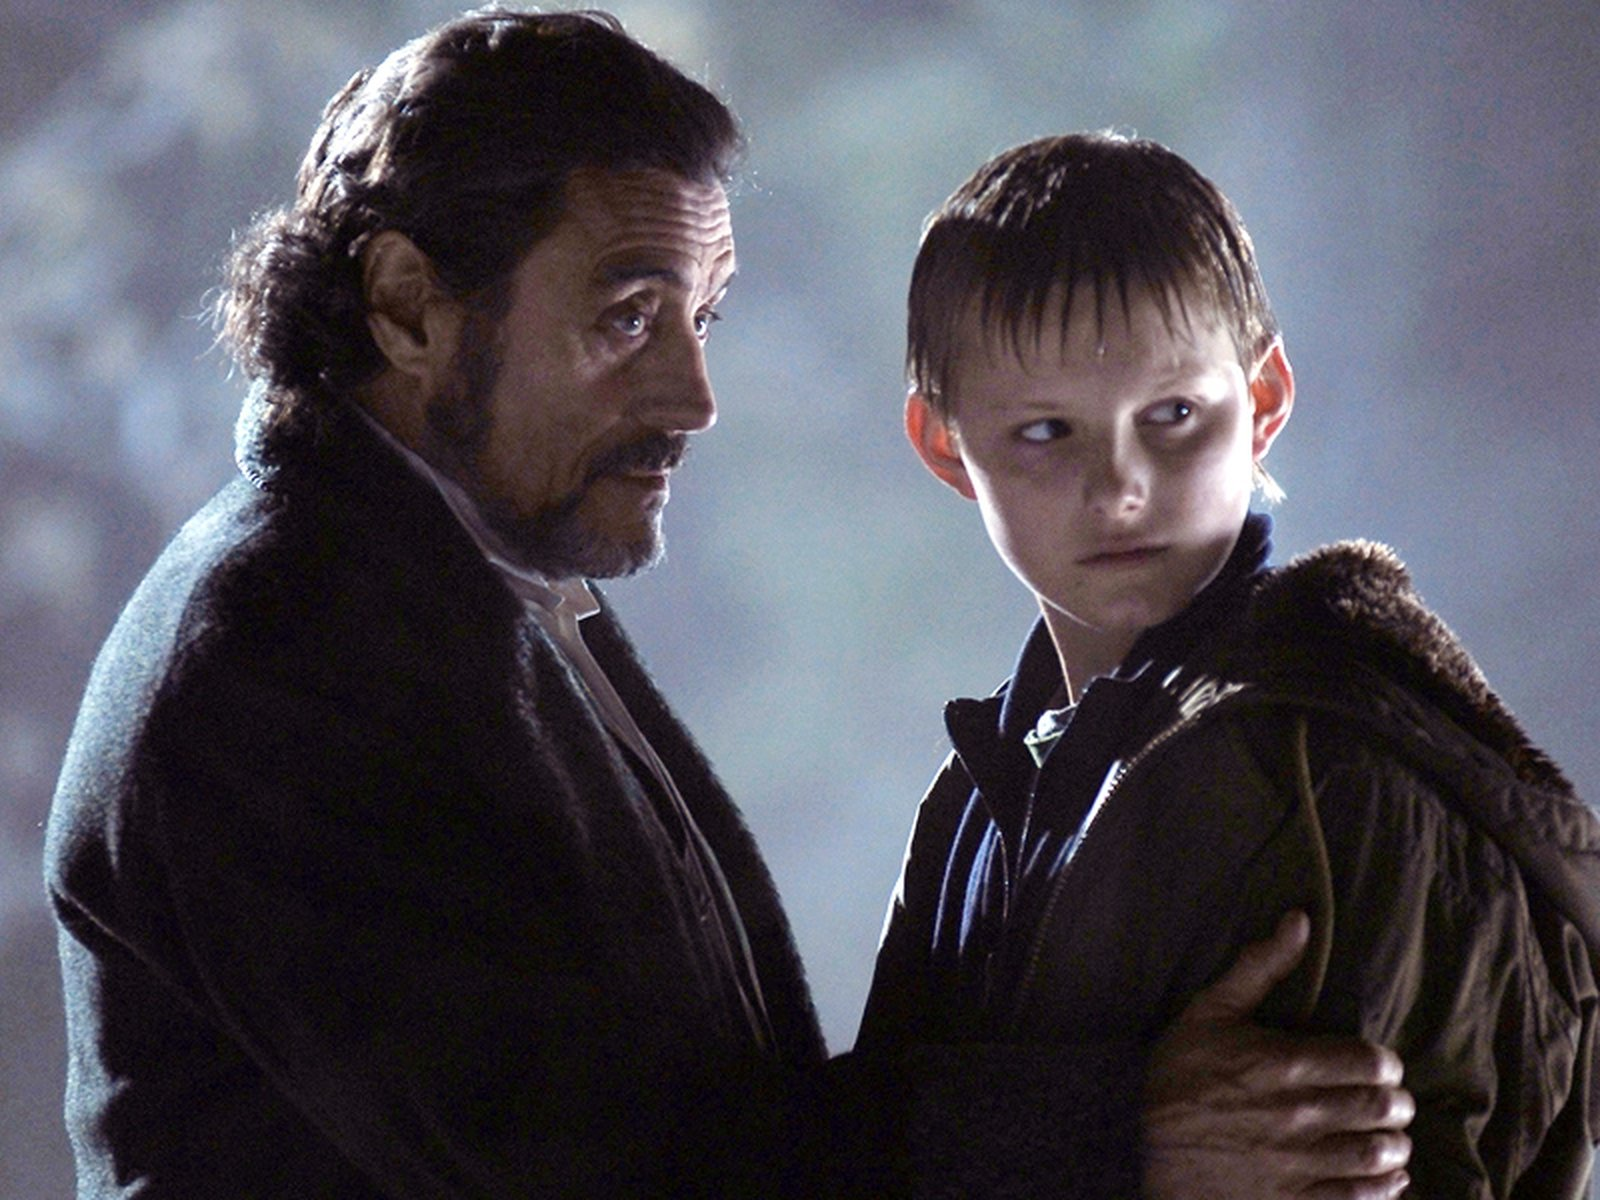 Will Stanton (Alexander Ludwig) and Merriman Lyon (Ian McShane) in The Seeker: The Dark is Rising (2007)